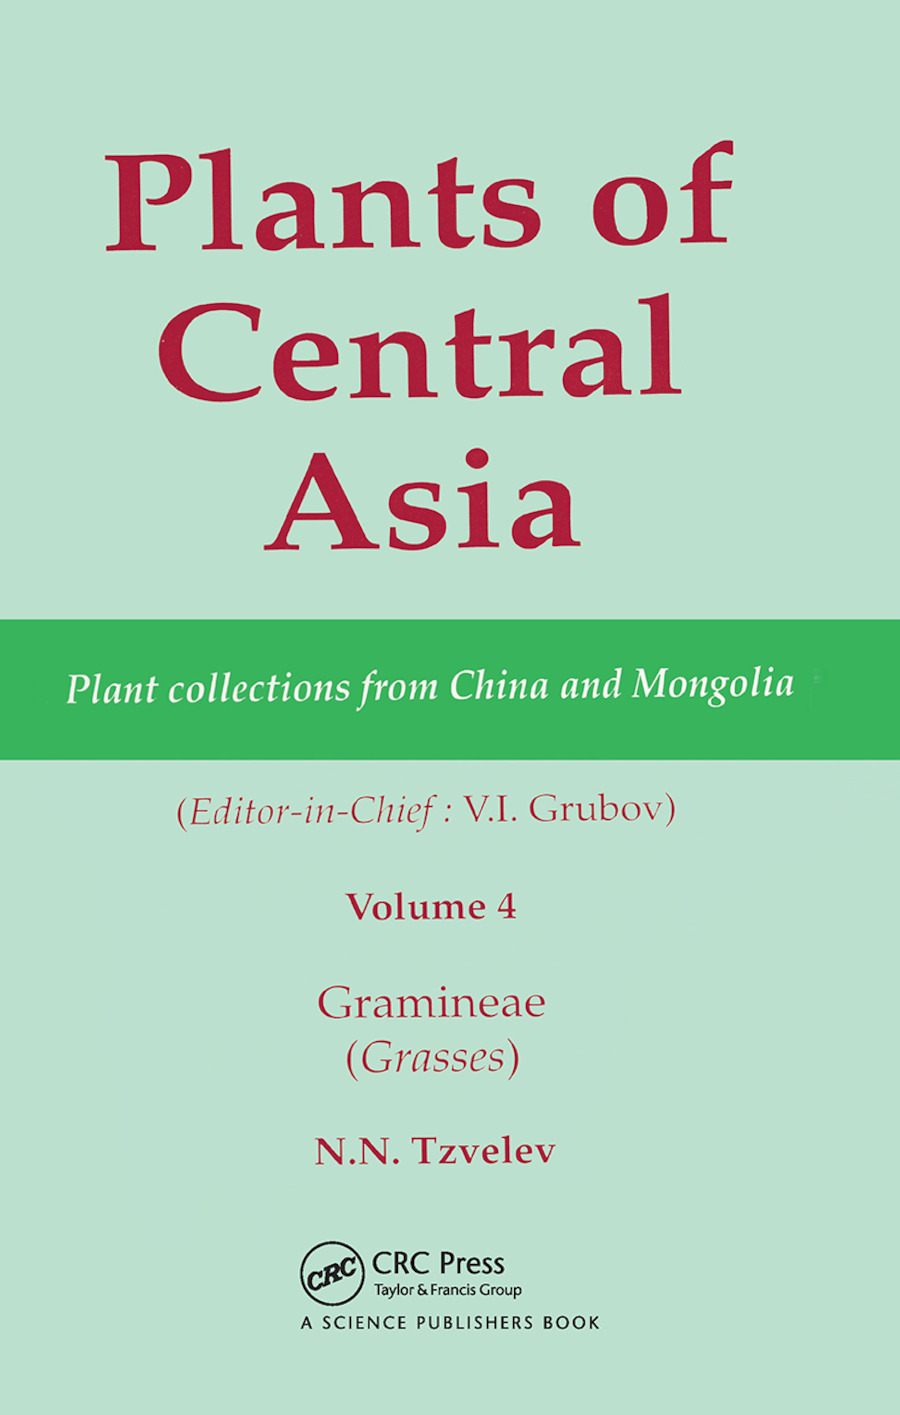 Plants of Central Asia - Plant Collection from China and Mongolia, Vol. 4: Gramineae (Grasses) book cover